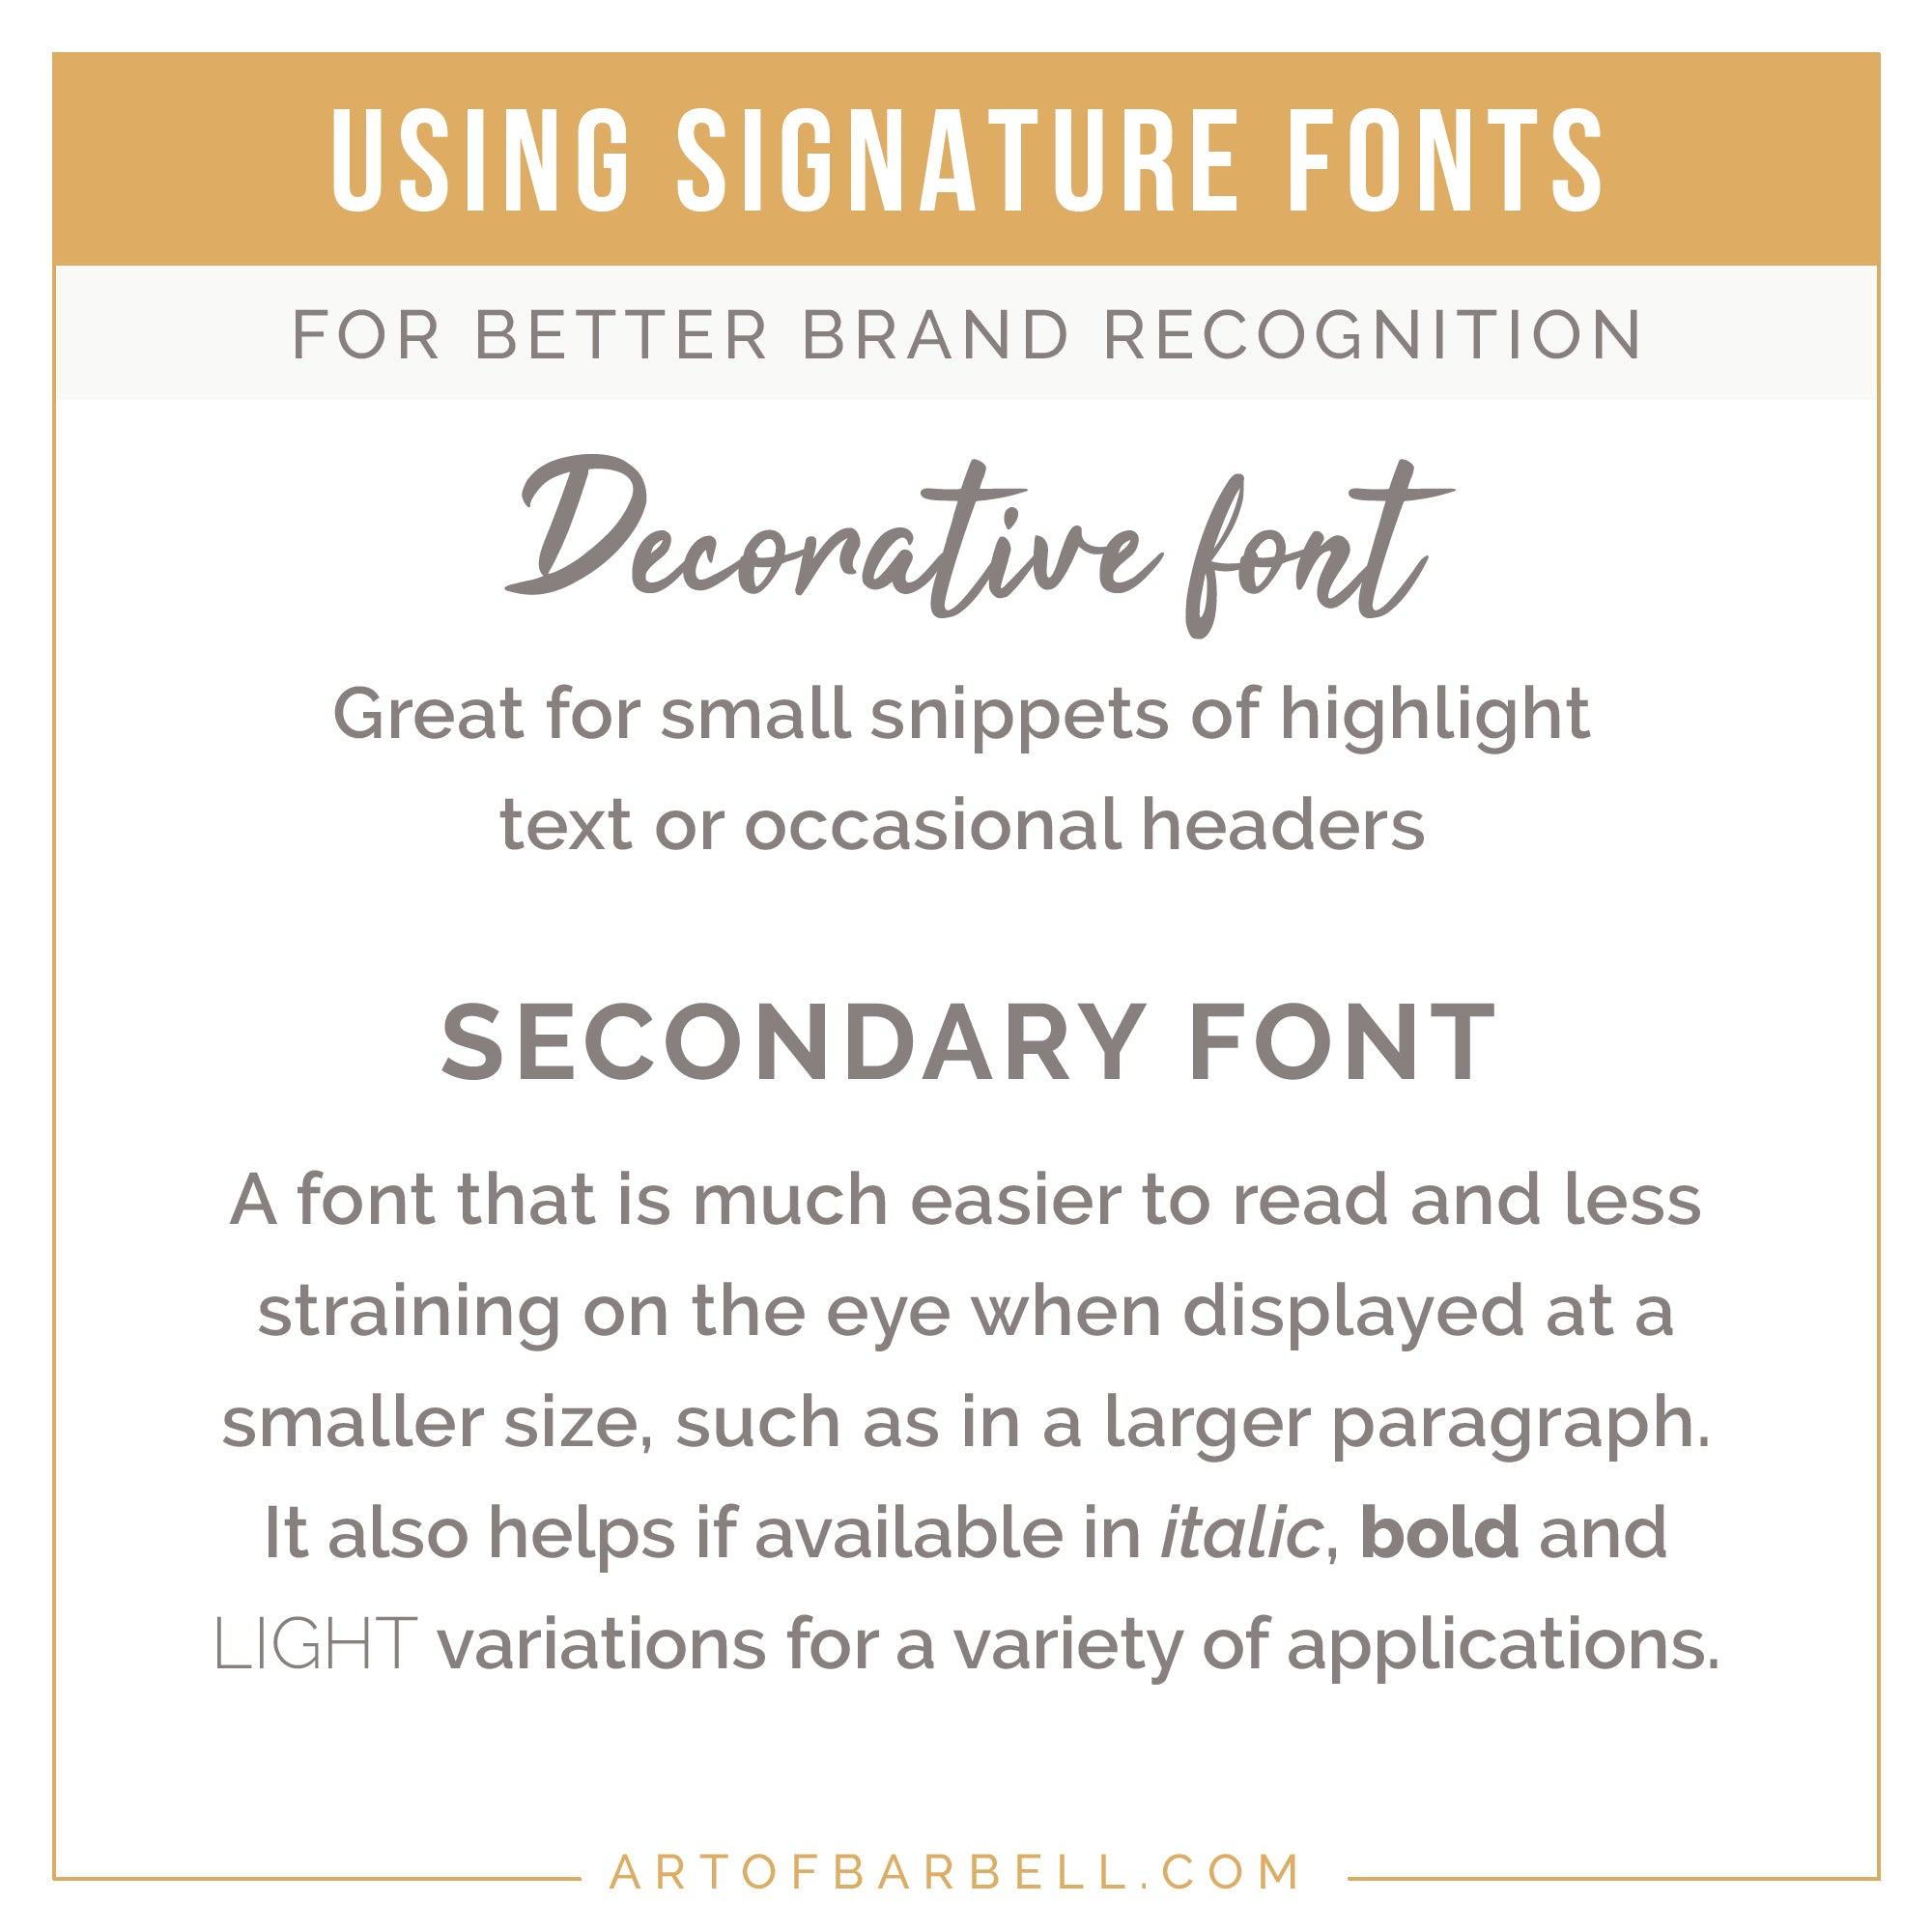 Tip # 1: Using the same signature fonts for better Brand Recognition